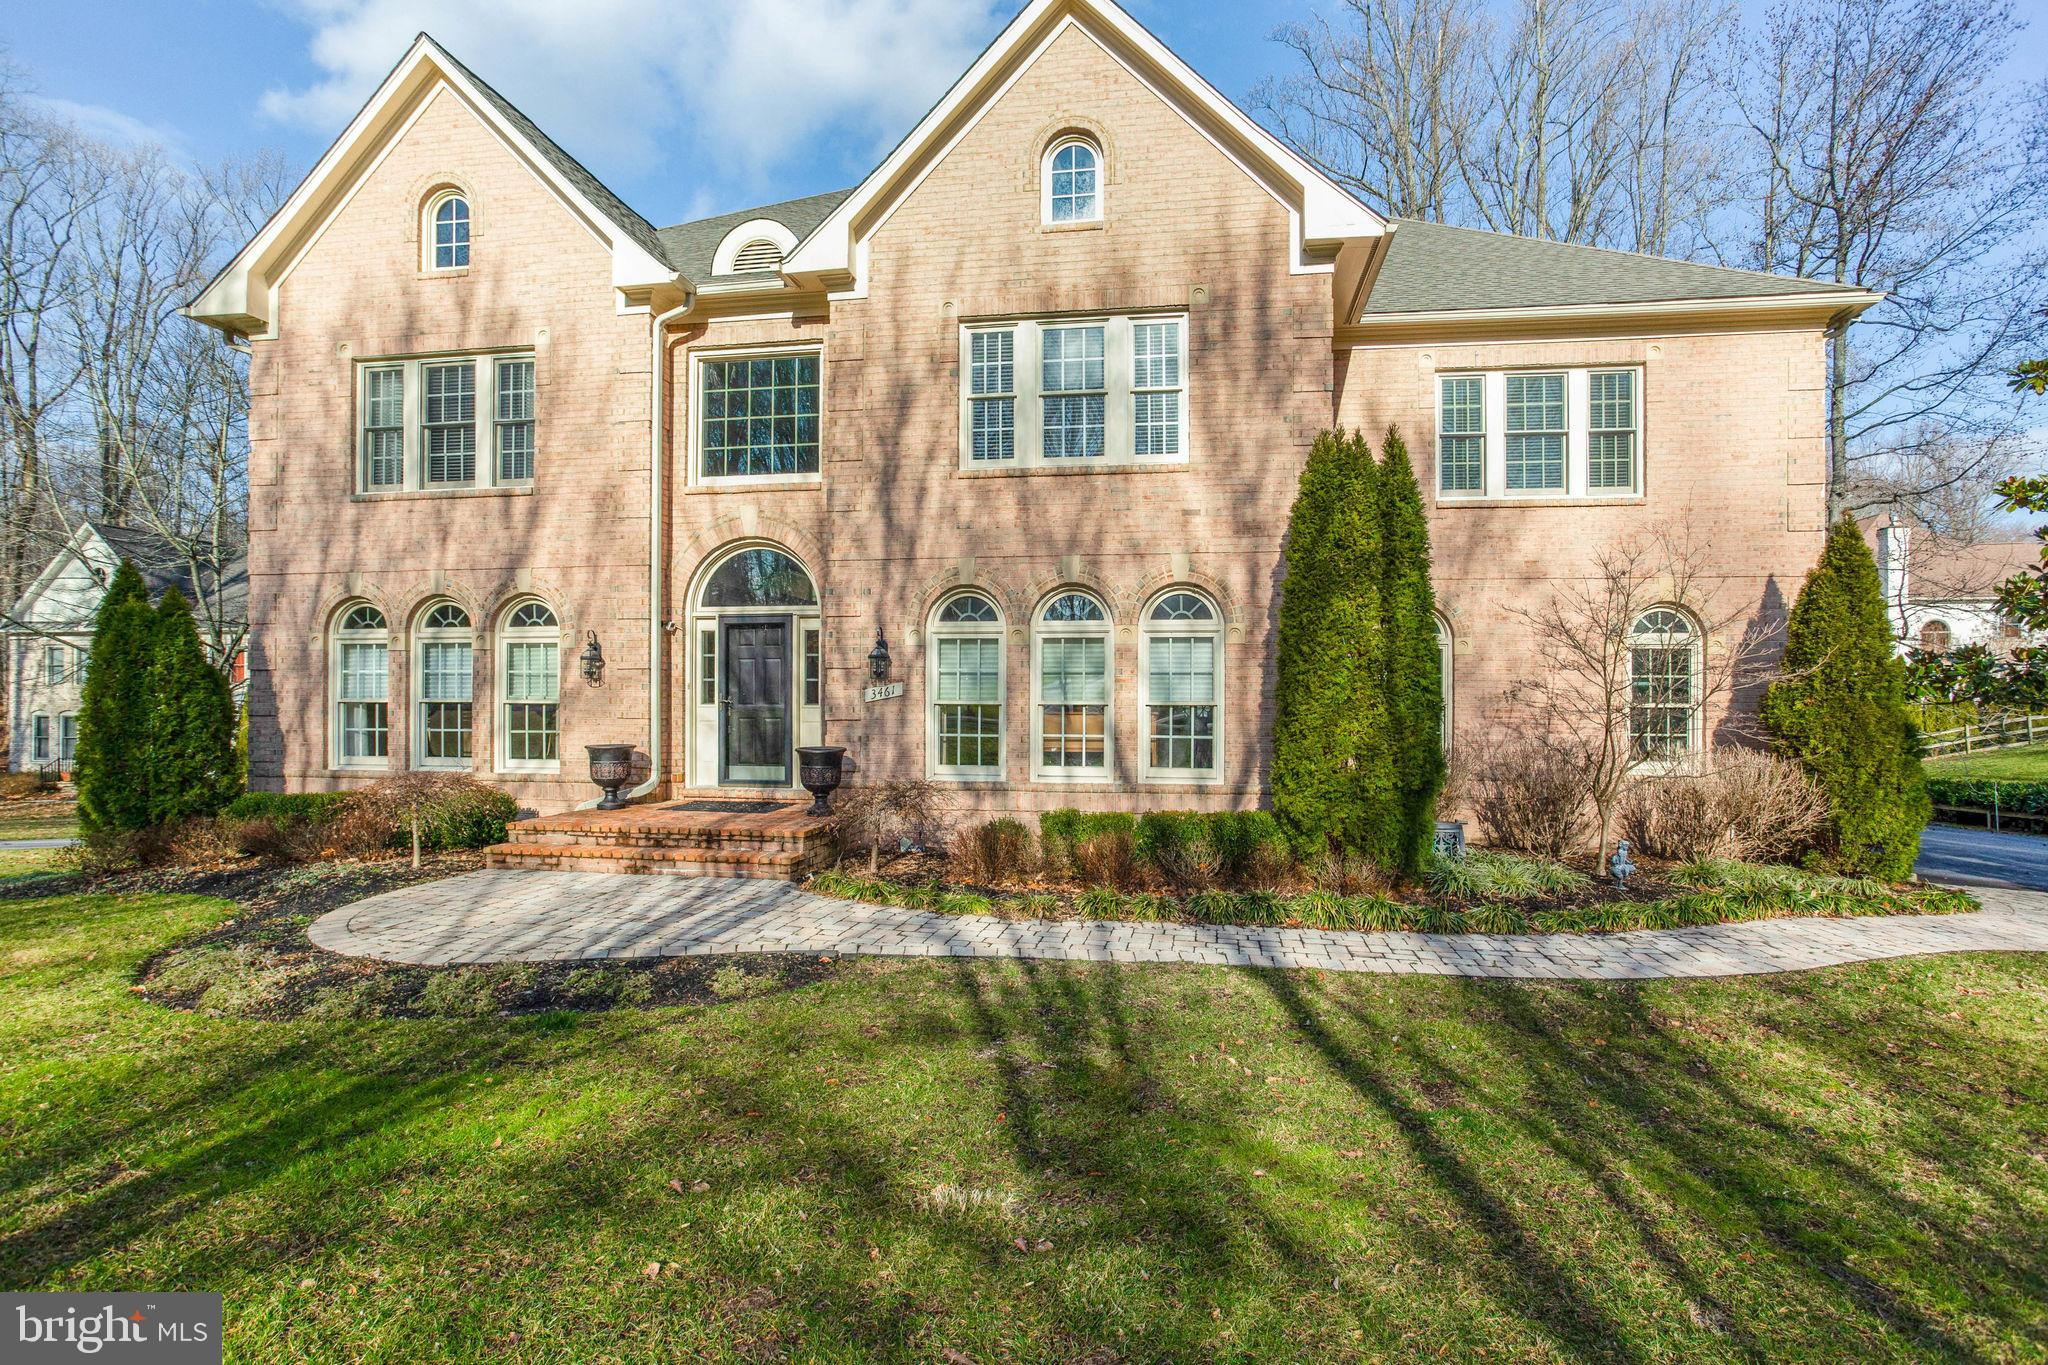 3461 MONARCH DRIVE, EDGEWATER, MD 21037